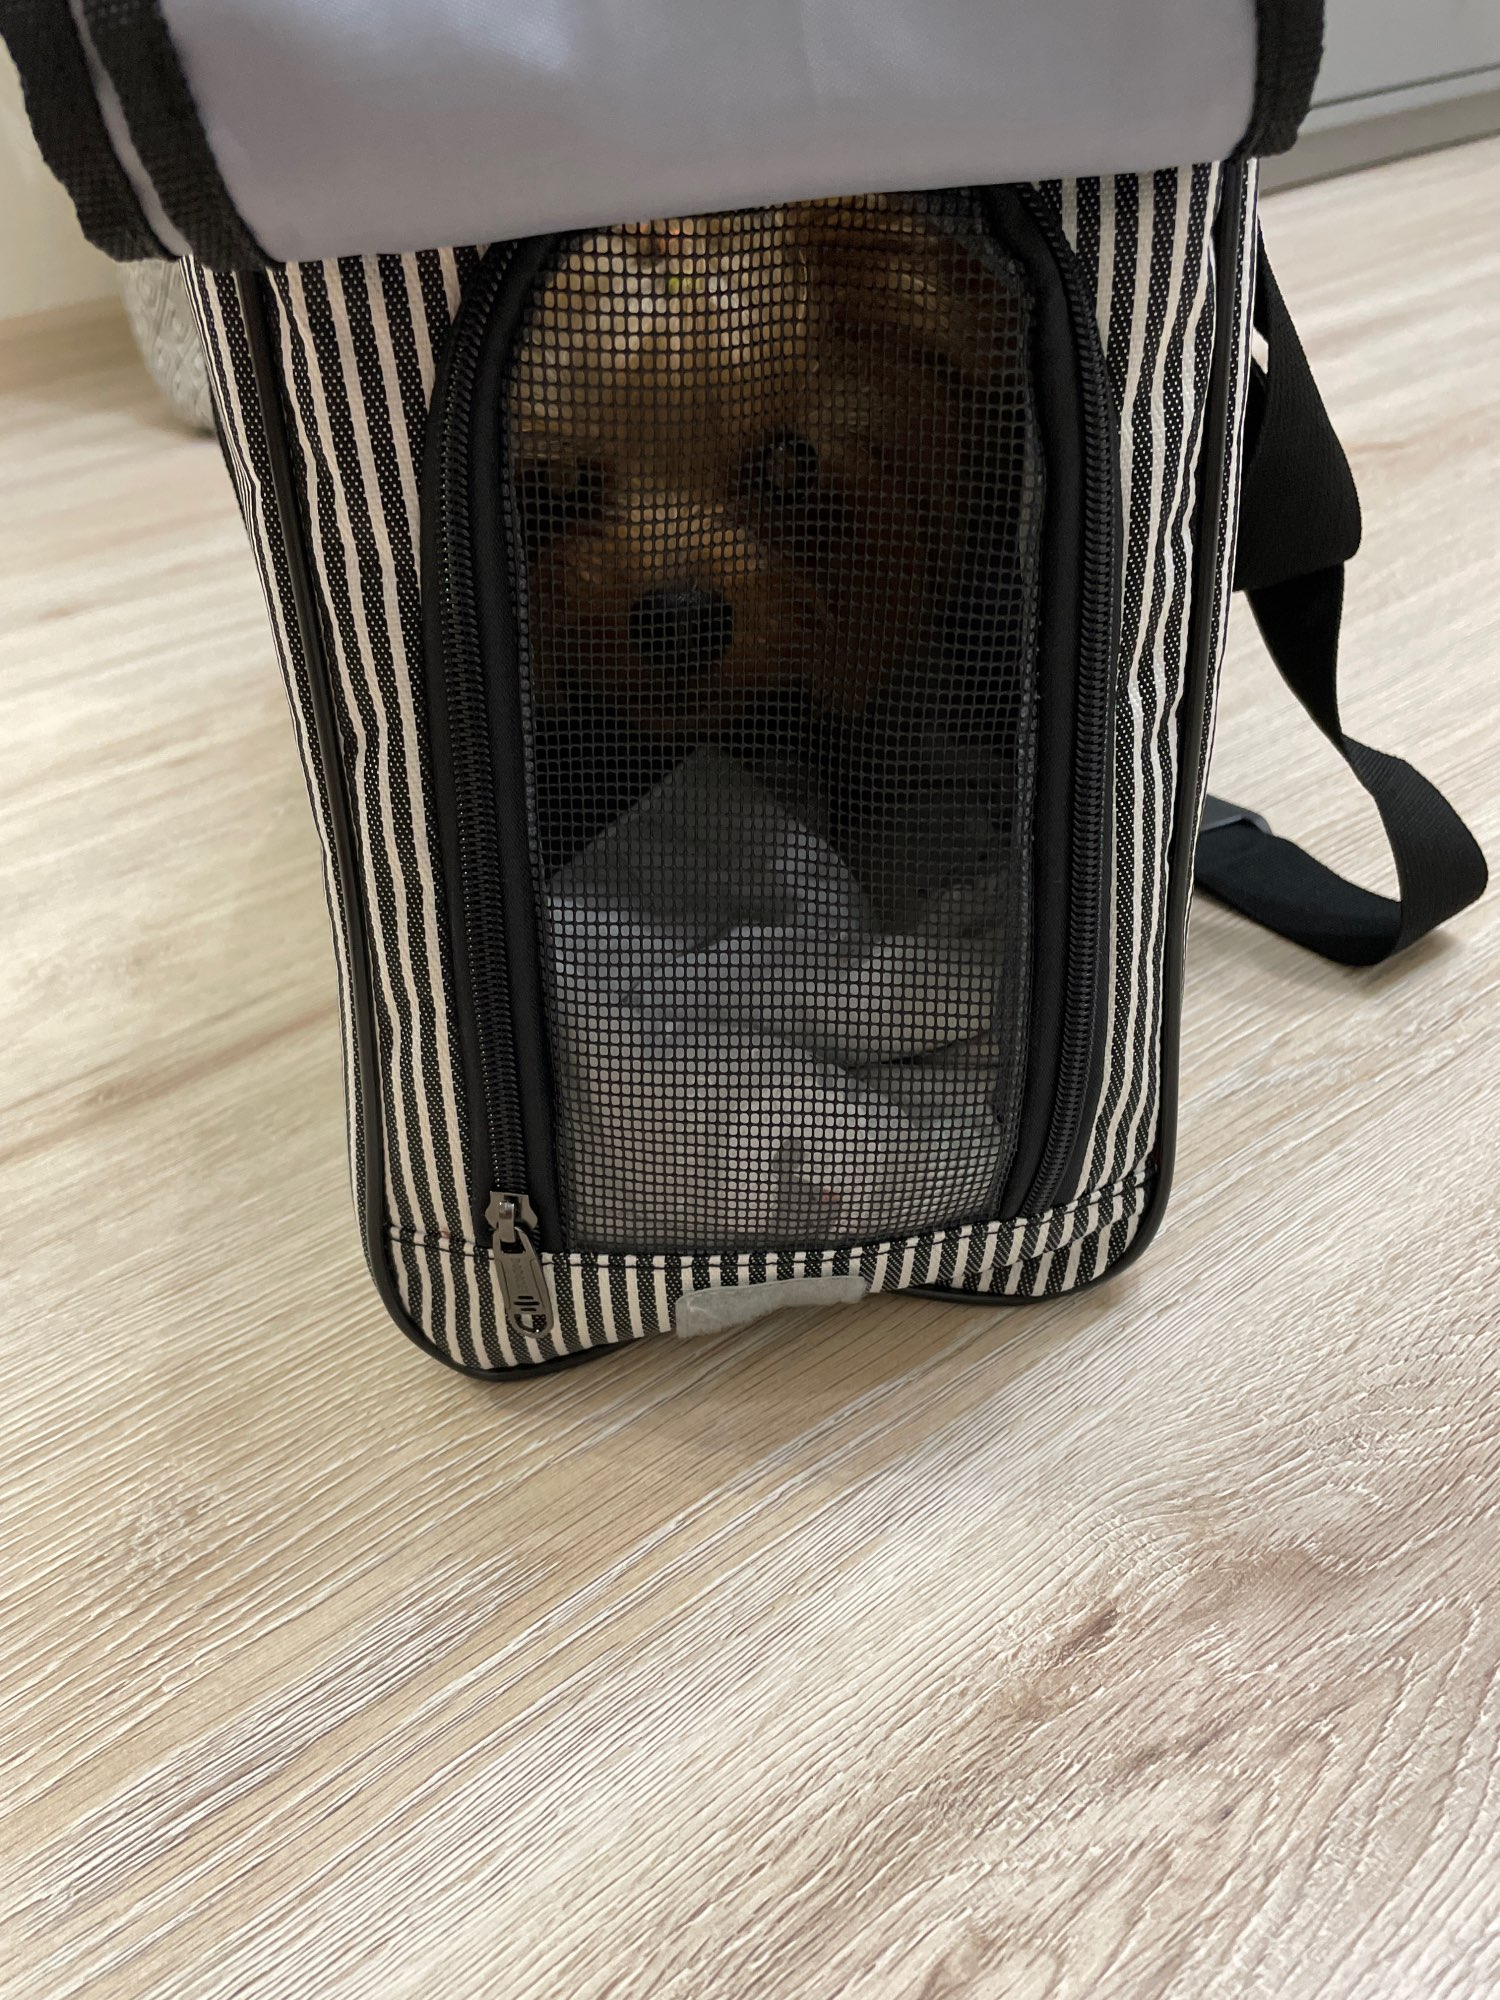 DogMEGA Striped Dog Carrier Tote photo review